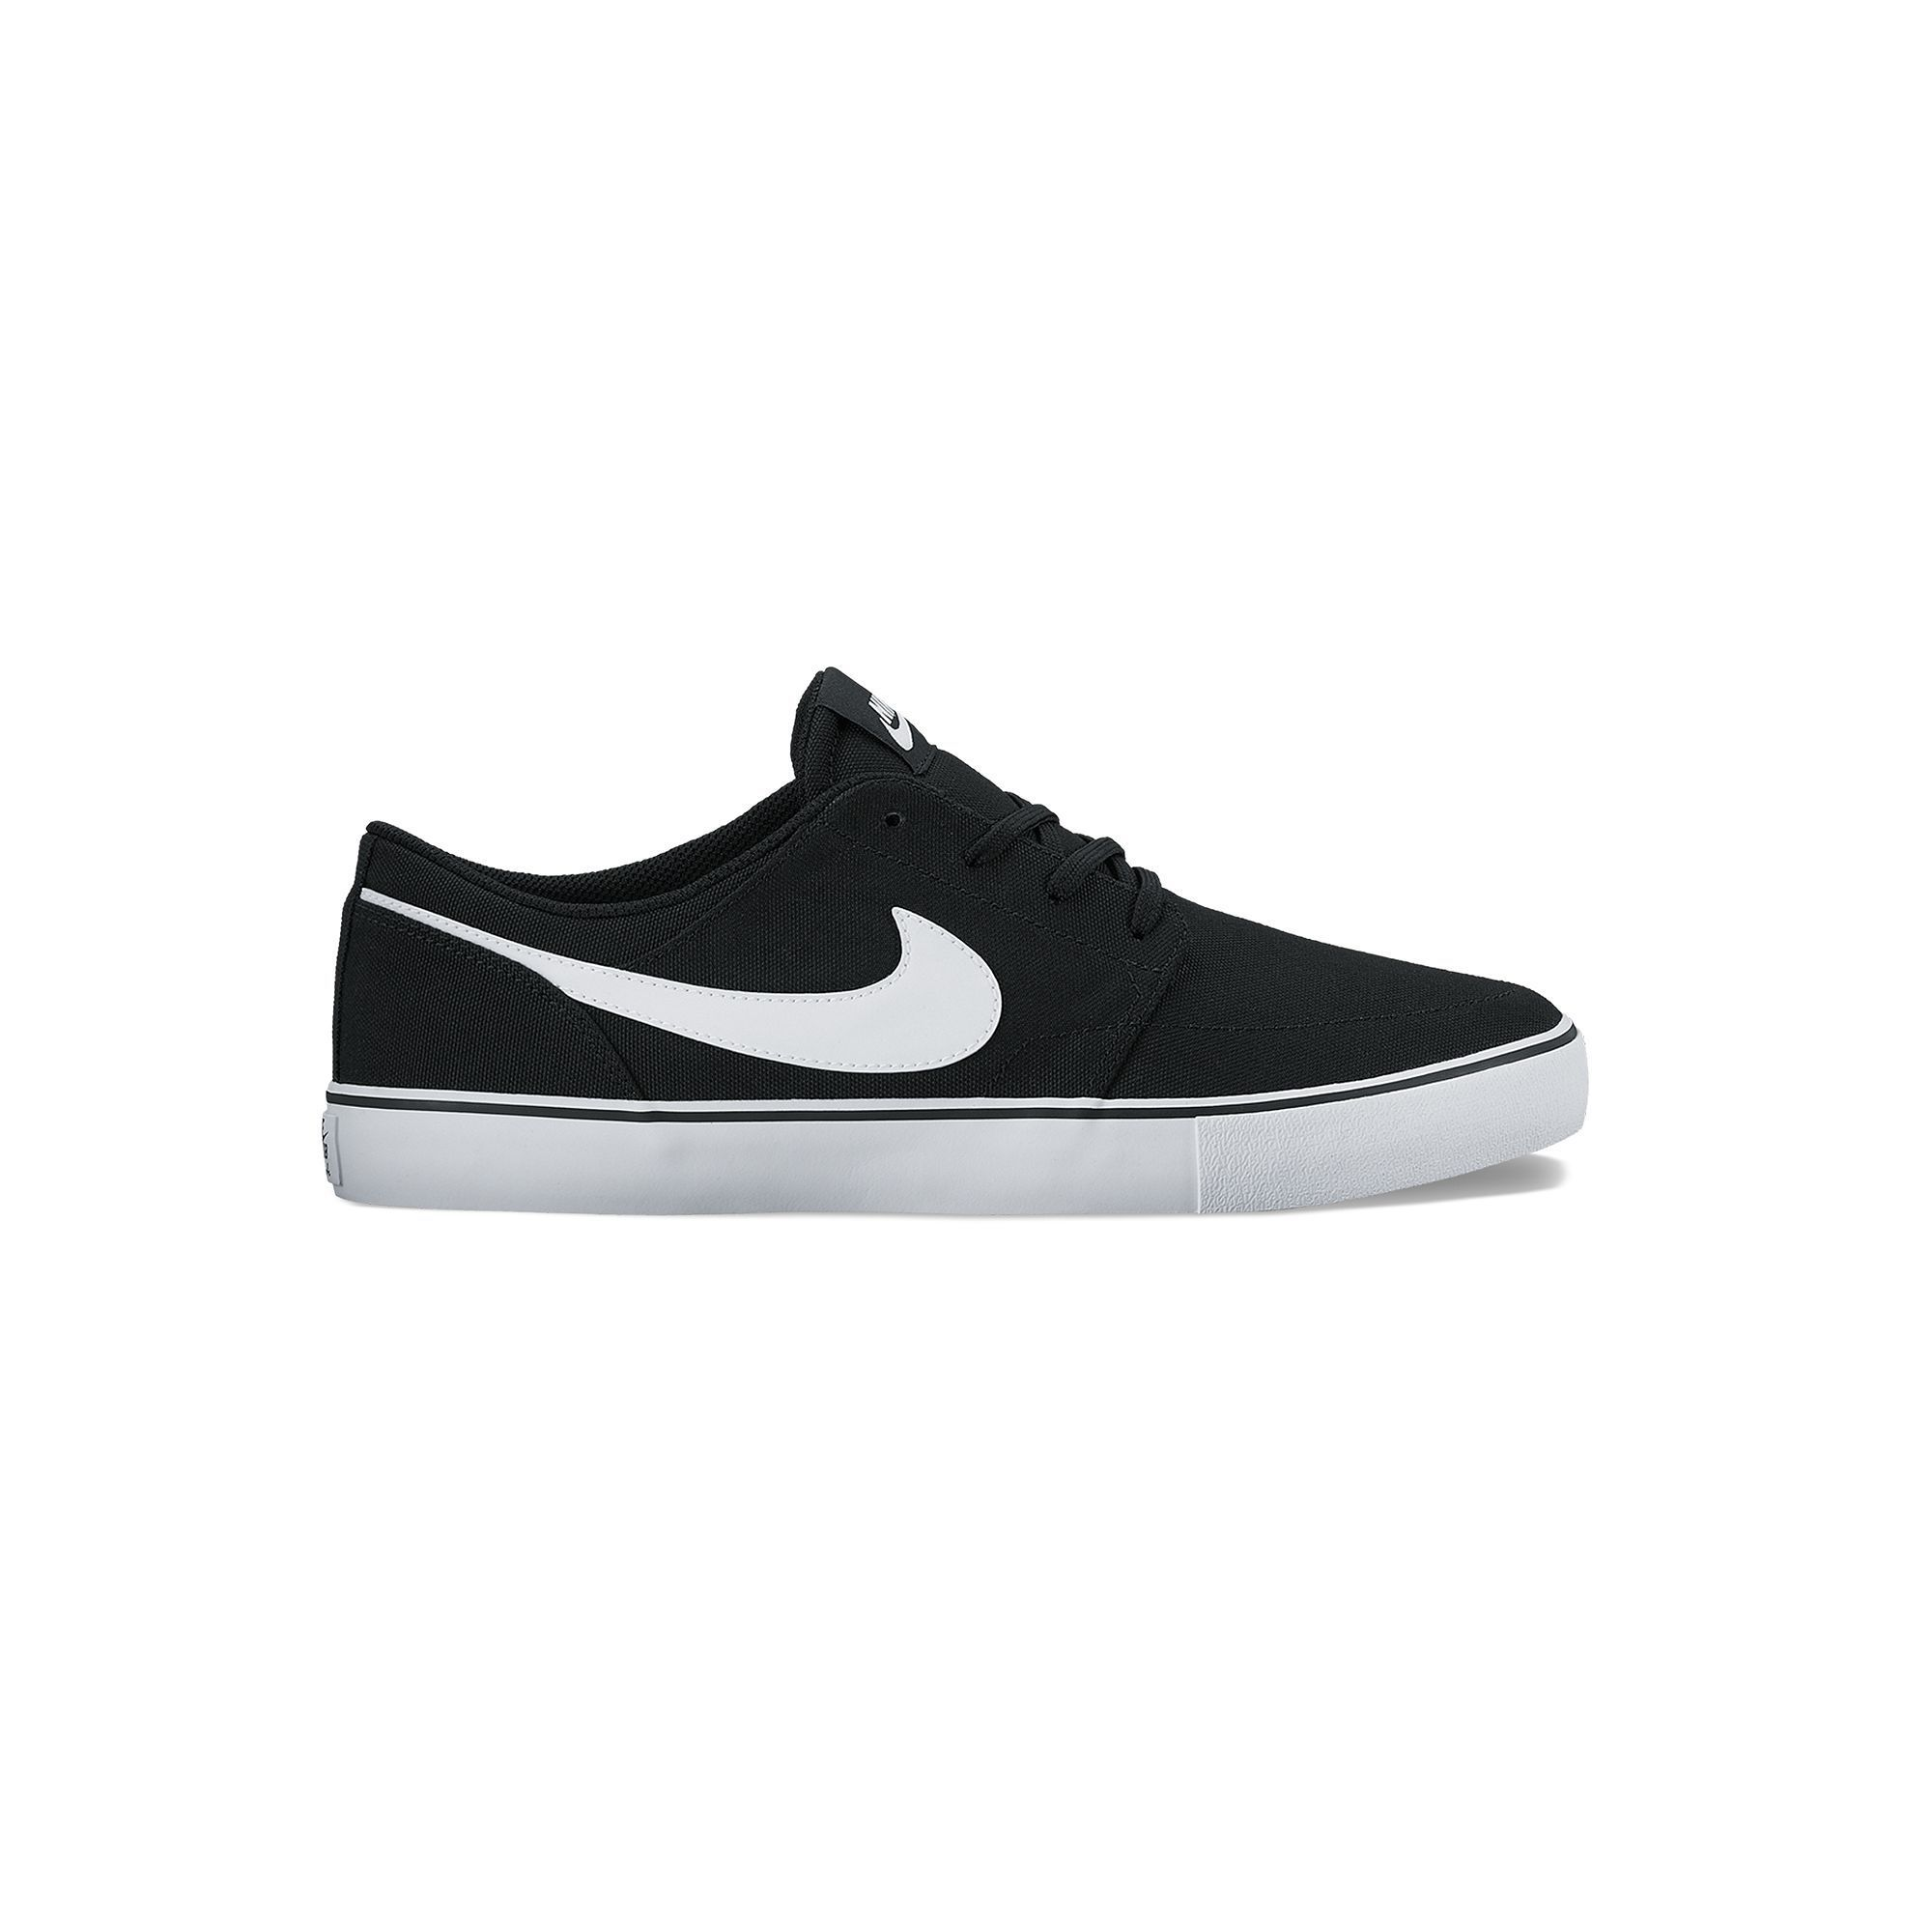 Portmore Nike 2019Products Ii Shoes Sb In Solarsoft Men's Skate fy76bg